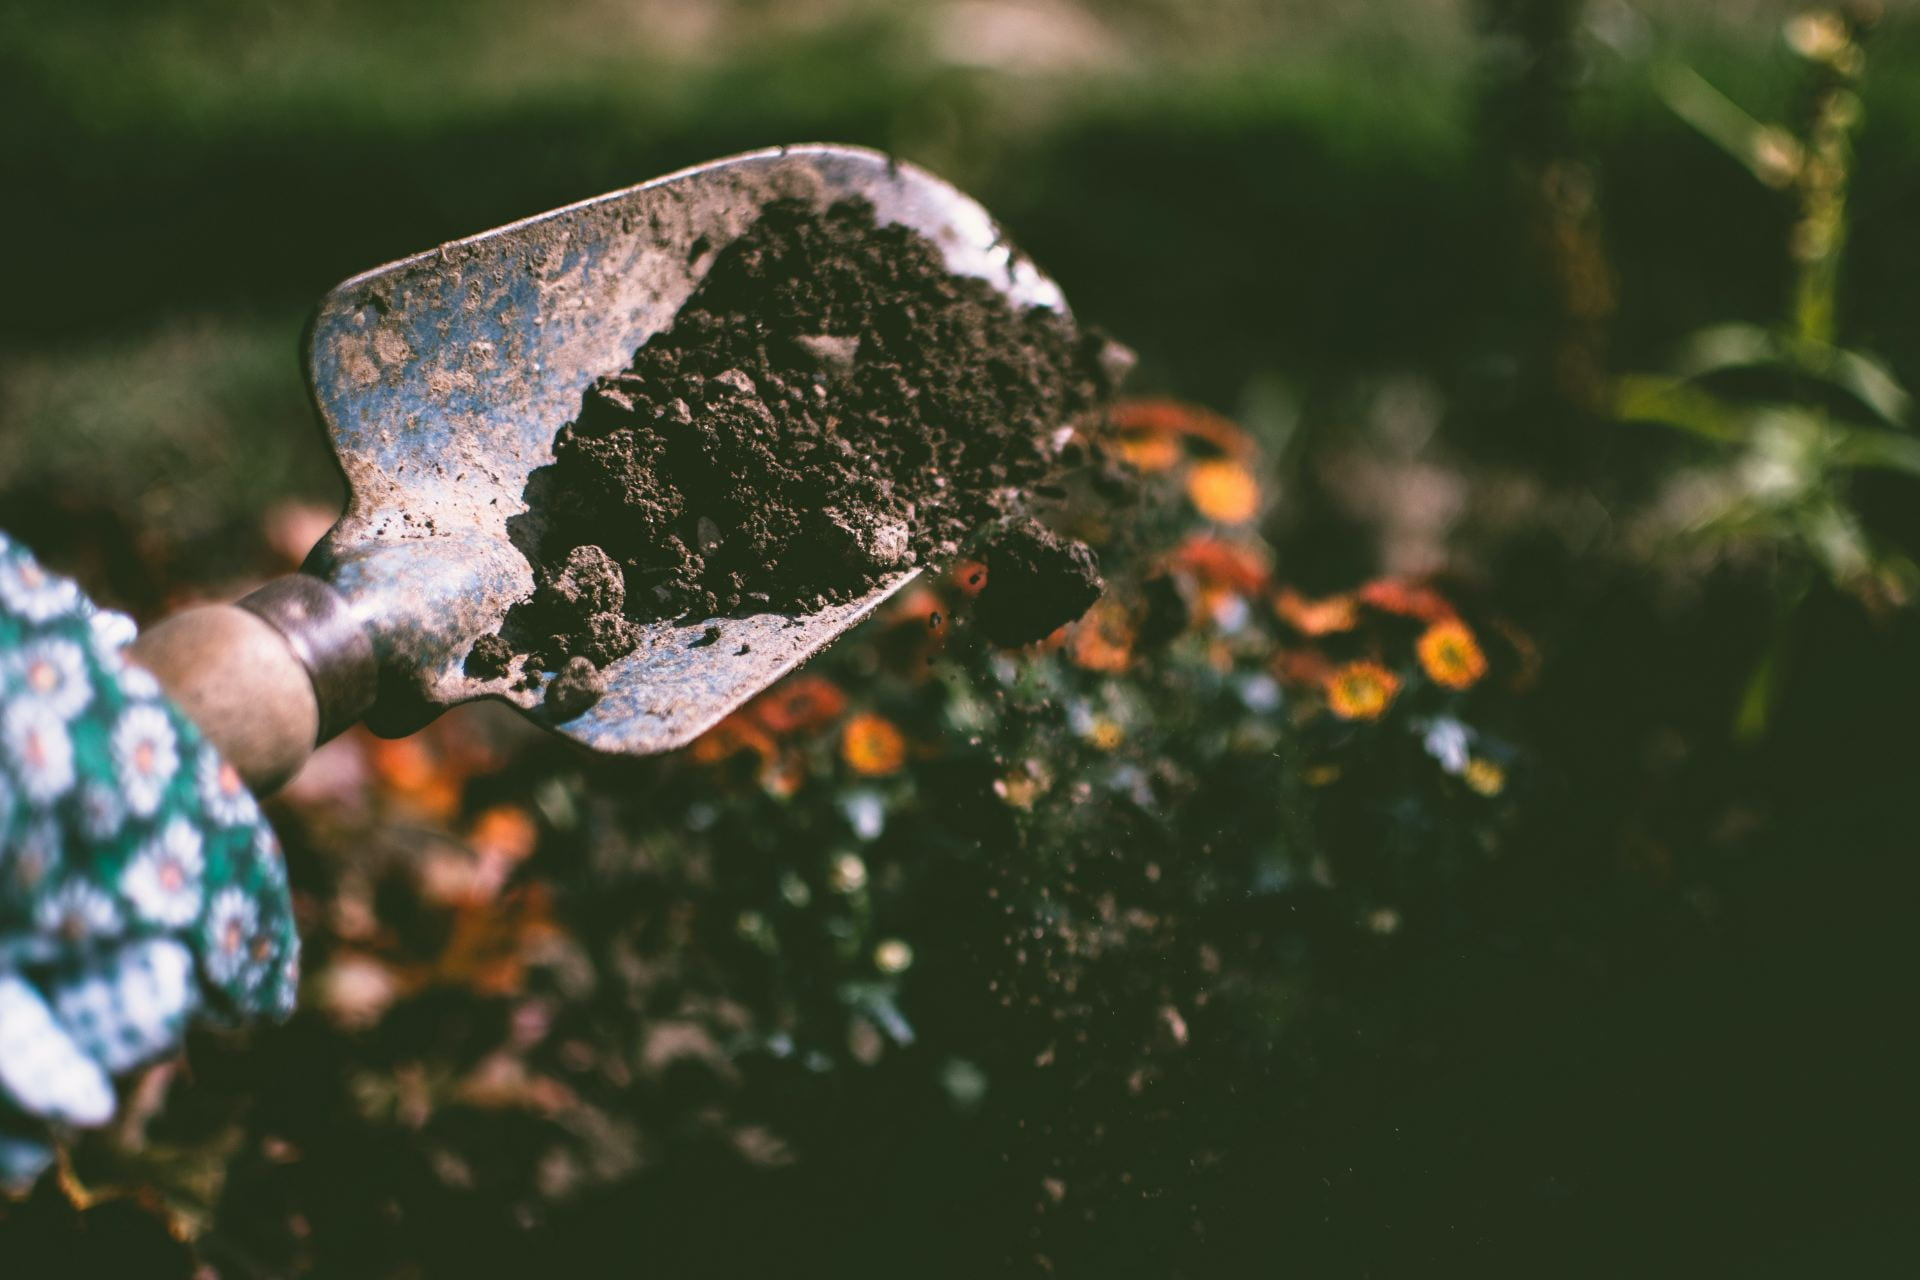 A photo of a shovel dropping seeds and soil in a garden with flourishing plants in the background.